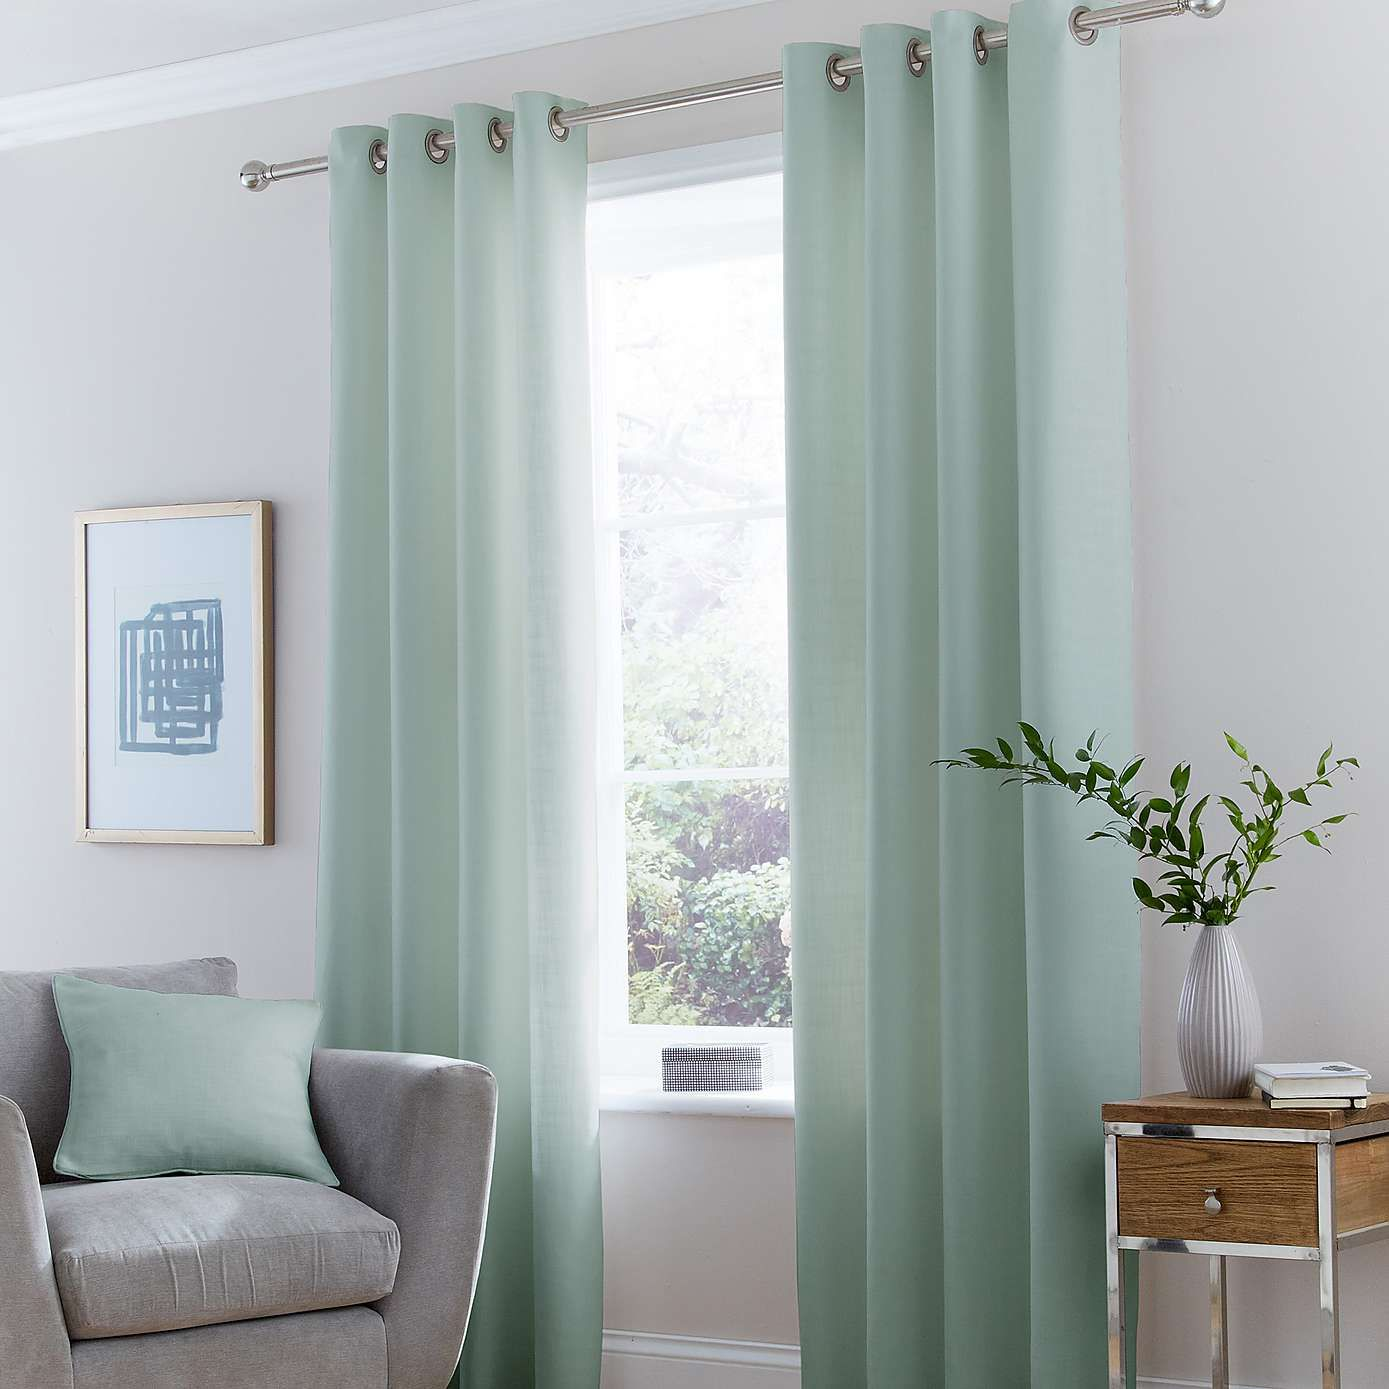 Vermont Seafoam Eyelet Curtains White Eyelet Curtains Curtains